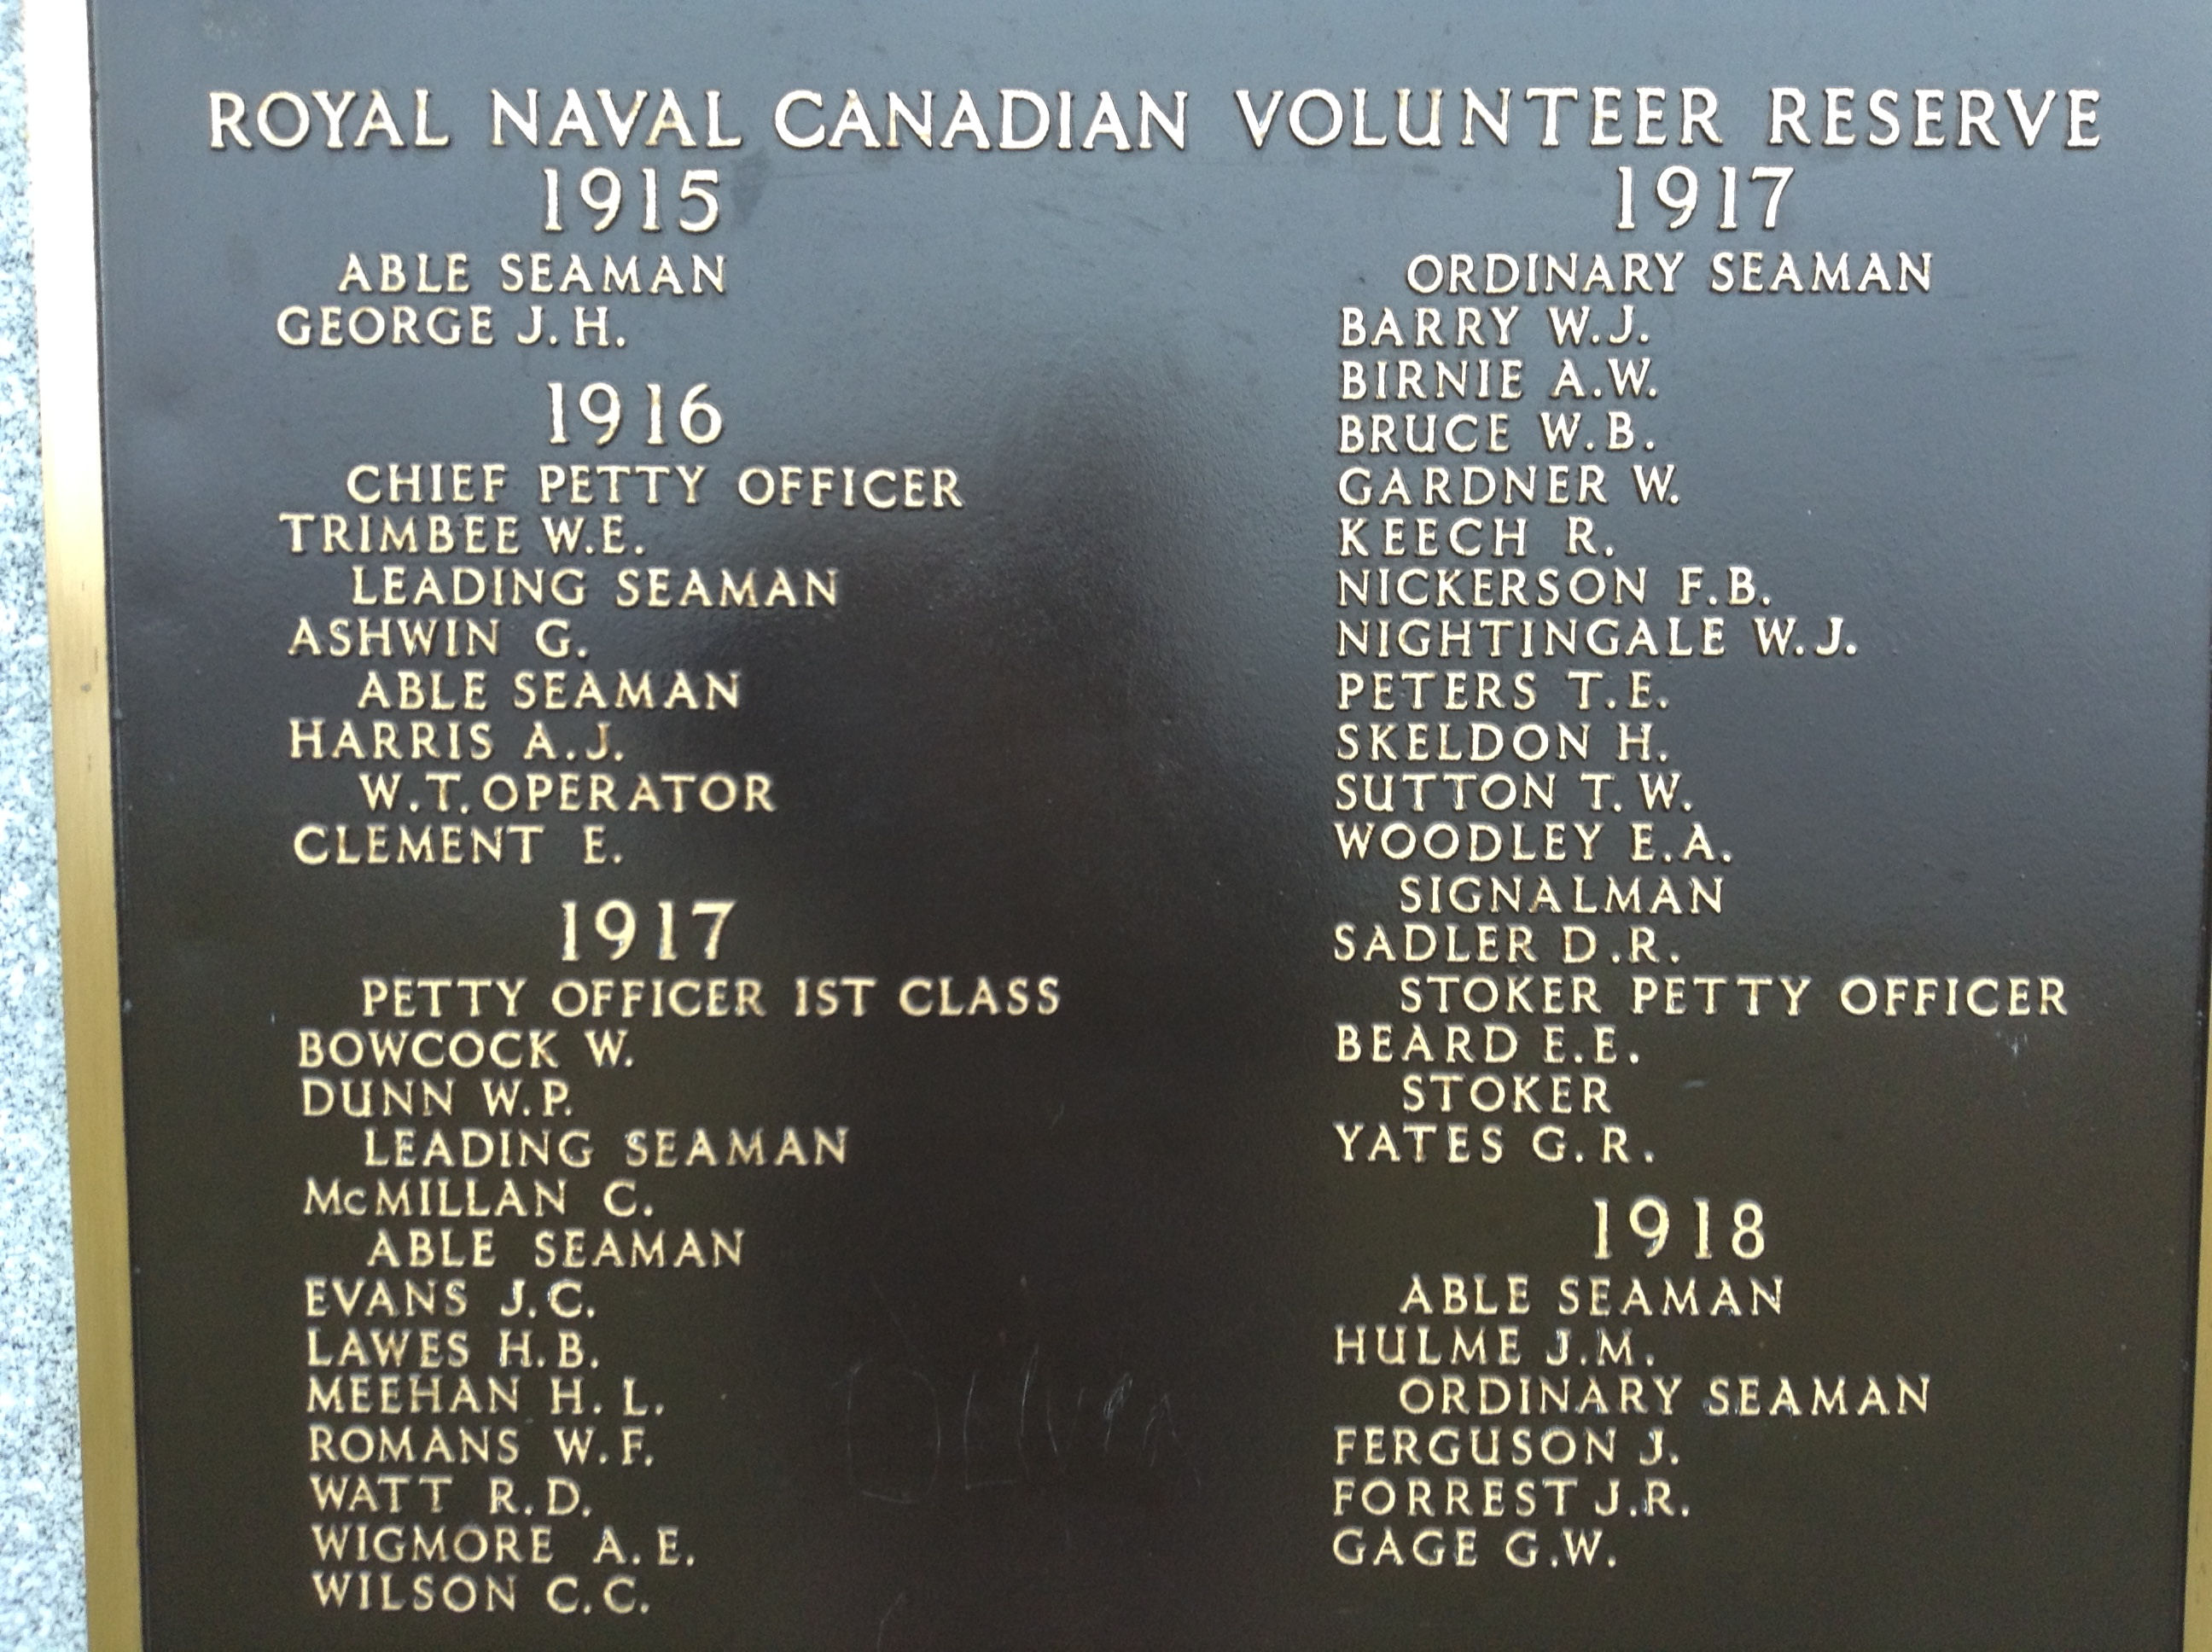 Panel– The panel on the Halifax Memorial, at Point Pleasant in Halifax, Nova Scotia, Canada, on which William James Barry's name is inscribed.